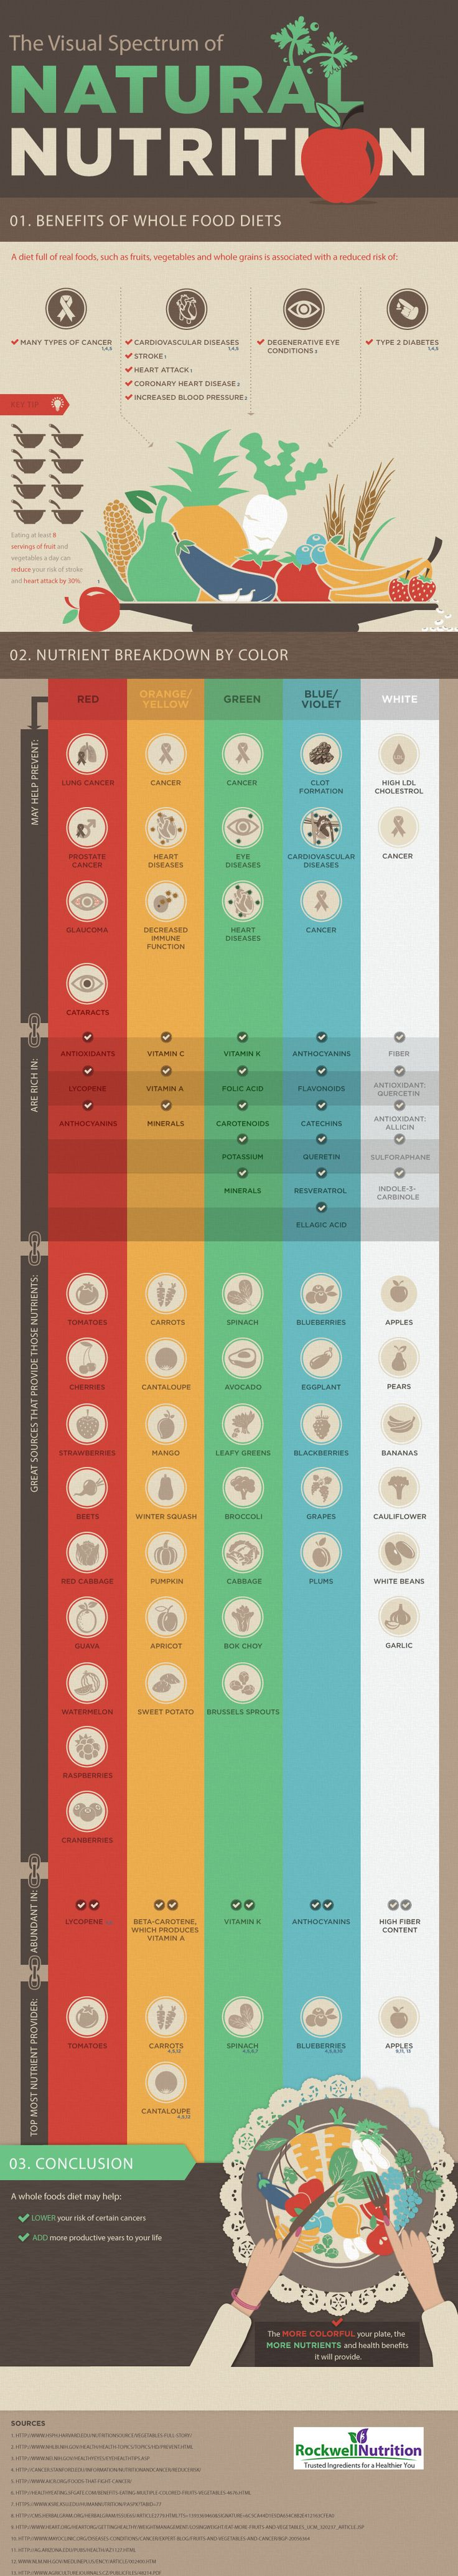 The Visual Spectrum of Natural Nutrition   #infographic #Food #Nutrition